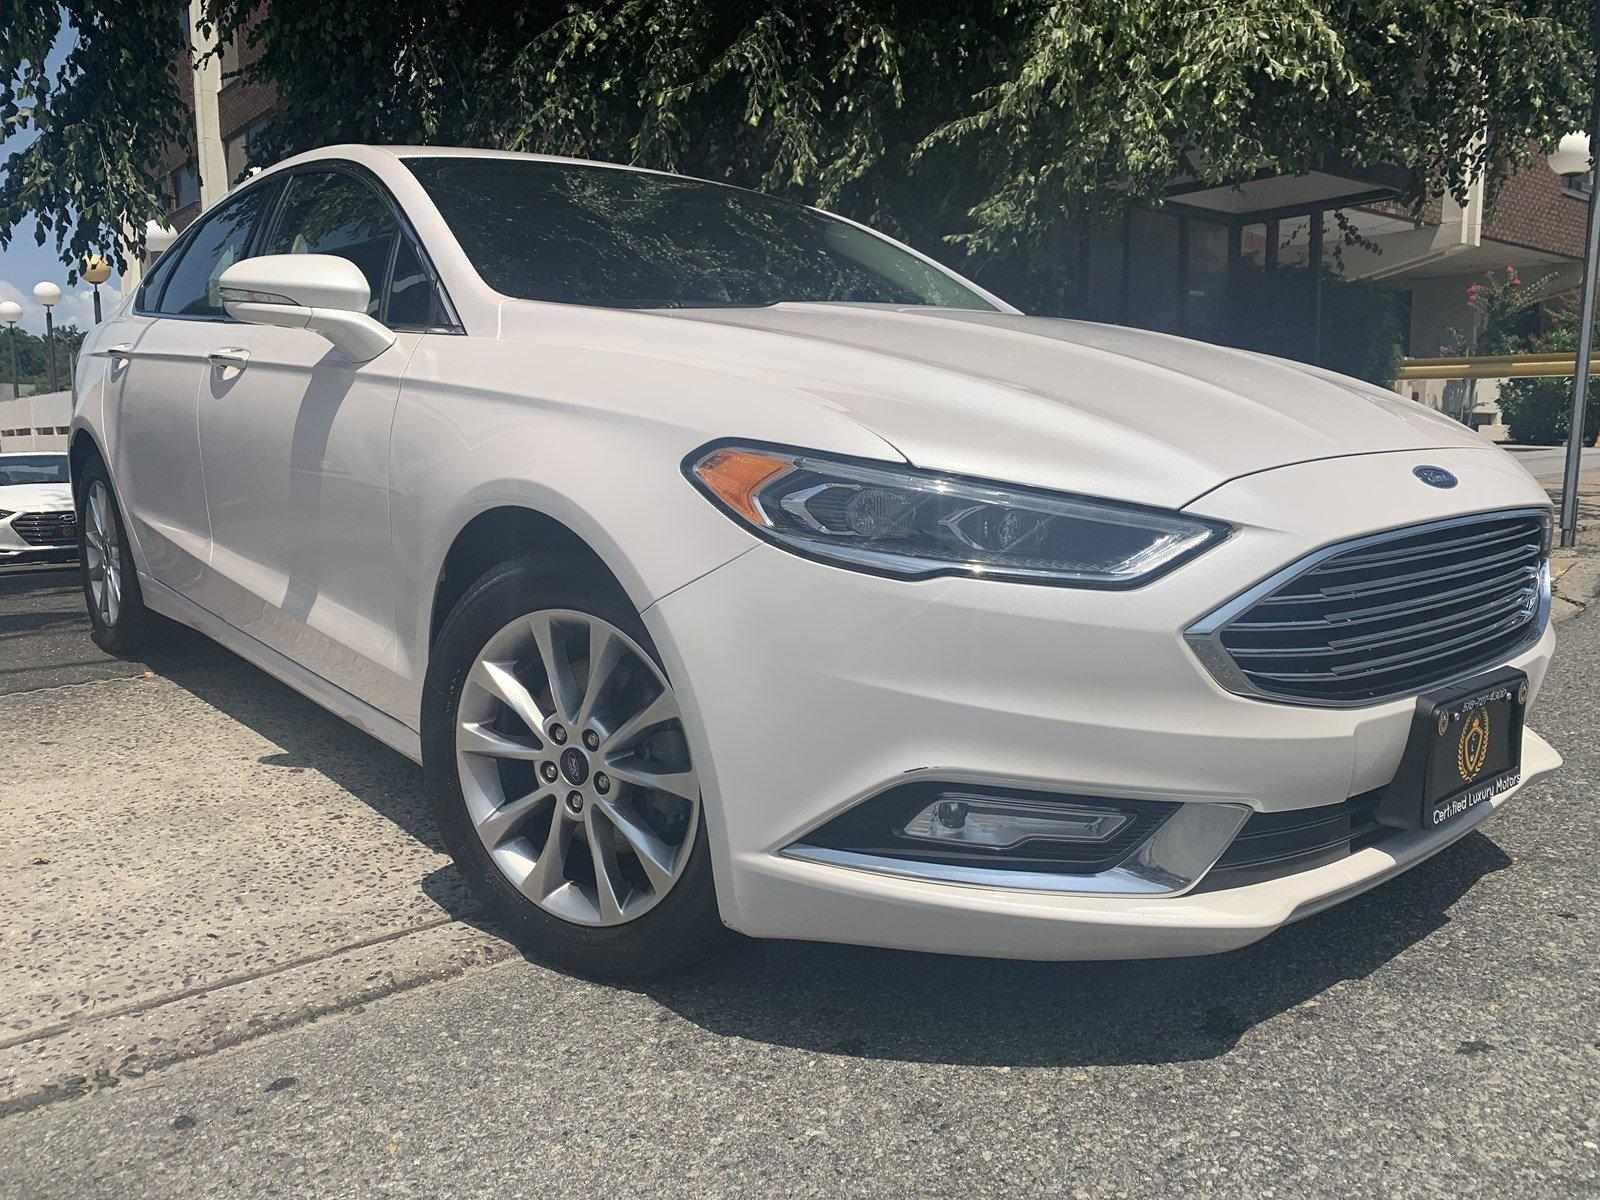 Used-2017-Ford-Fusion-SE-(Leather,Backup-Cam,Sunroof)